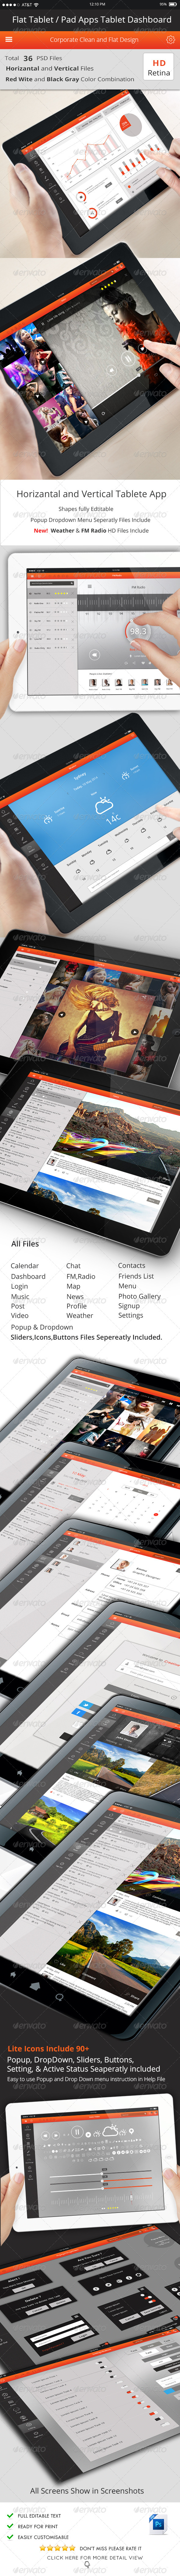 GraphicRiver Flat Tablet and Pad App Dashboard-02 7035610